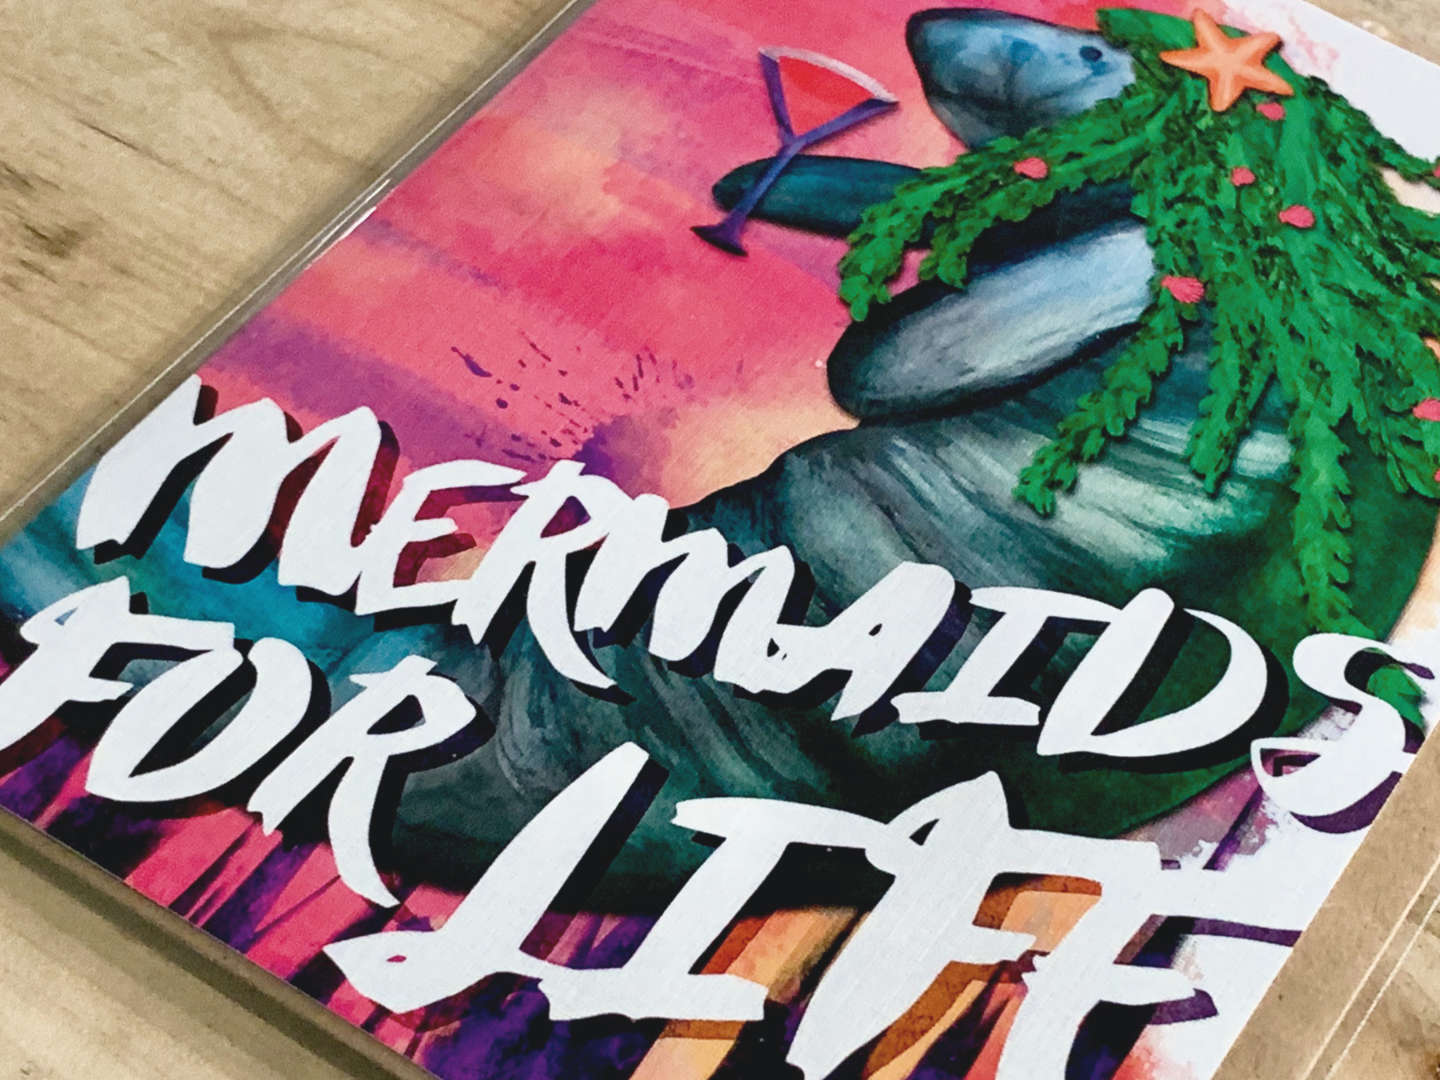 For The Relatable Mermaid.